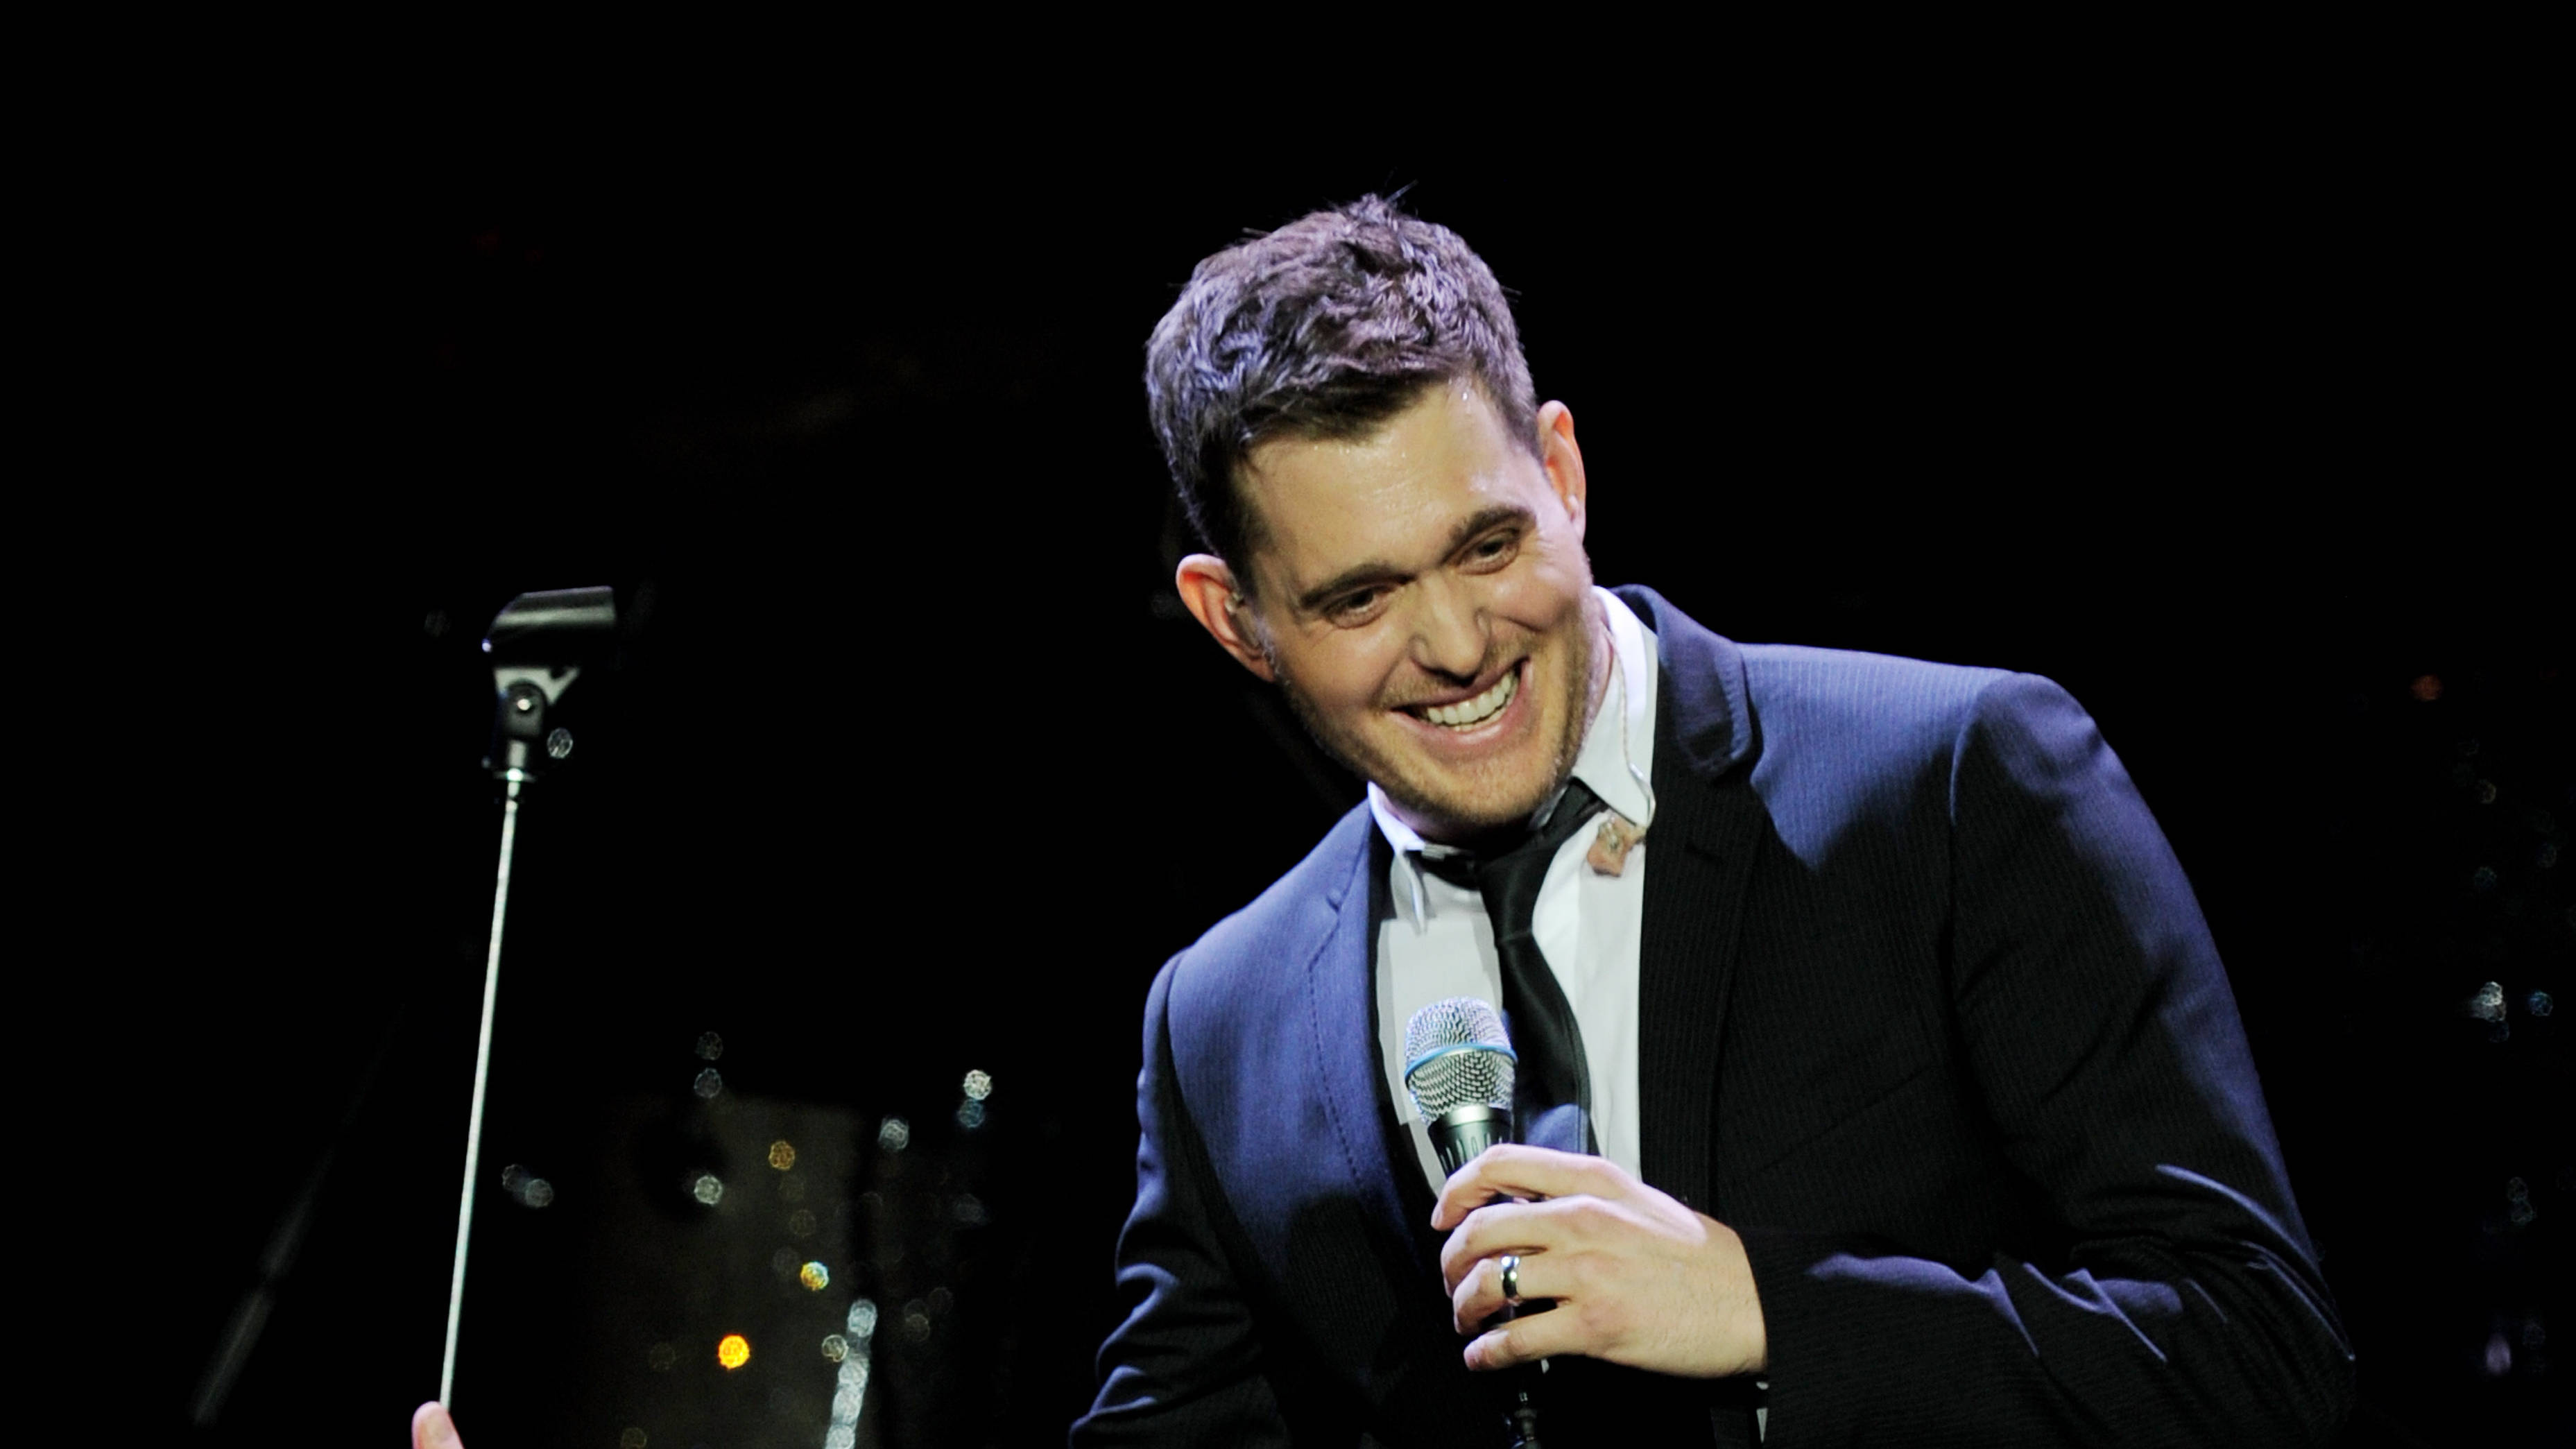 8 of the greatest Michael Bublé songs ever - Smooth